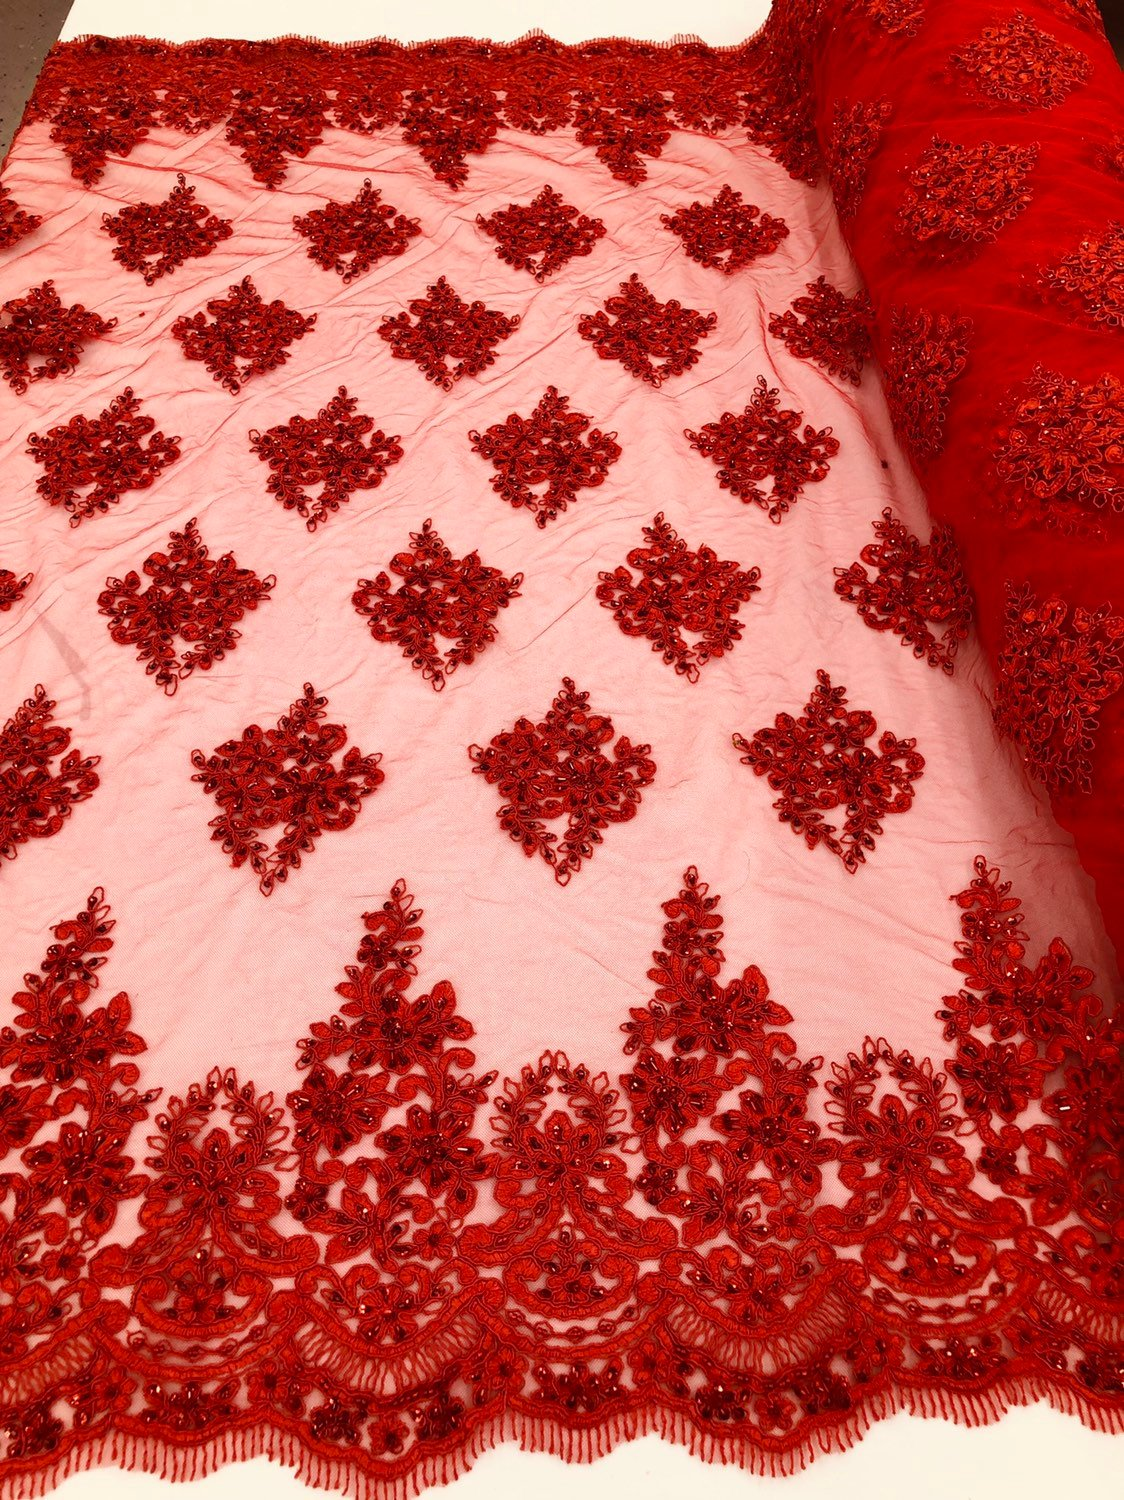 Red Beaded Fabric, Lace Fabric By The Yard - Embroider Beaded On A Mesh For Bridal Veil Flower-Floral Mesh Dress Top Wedding Decor